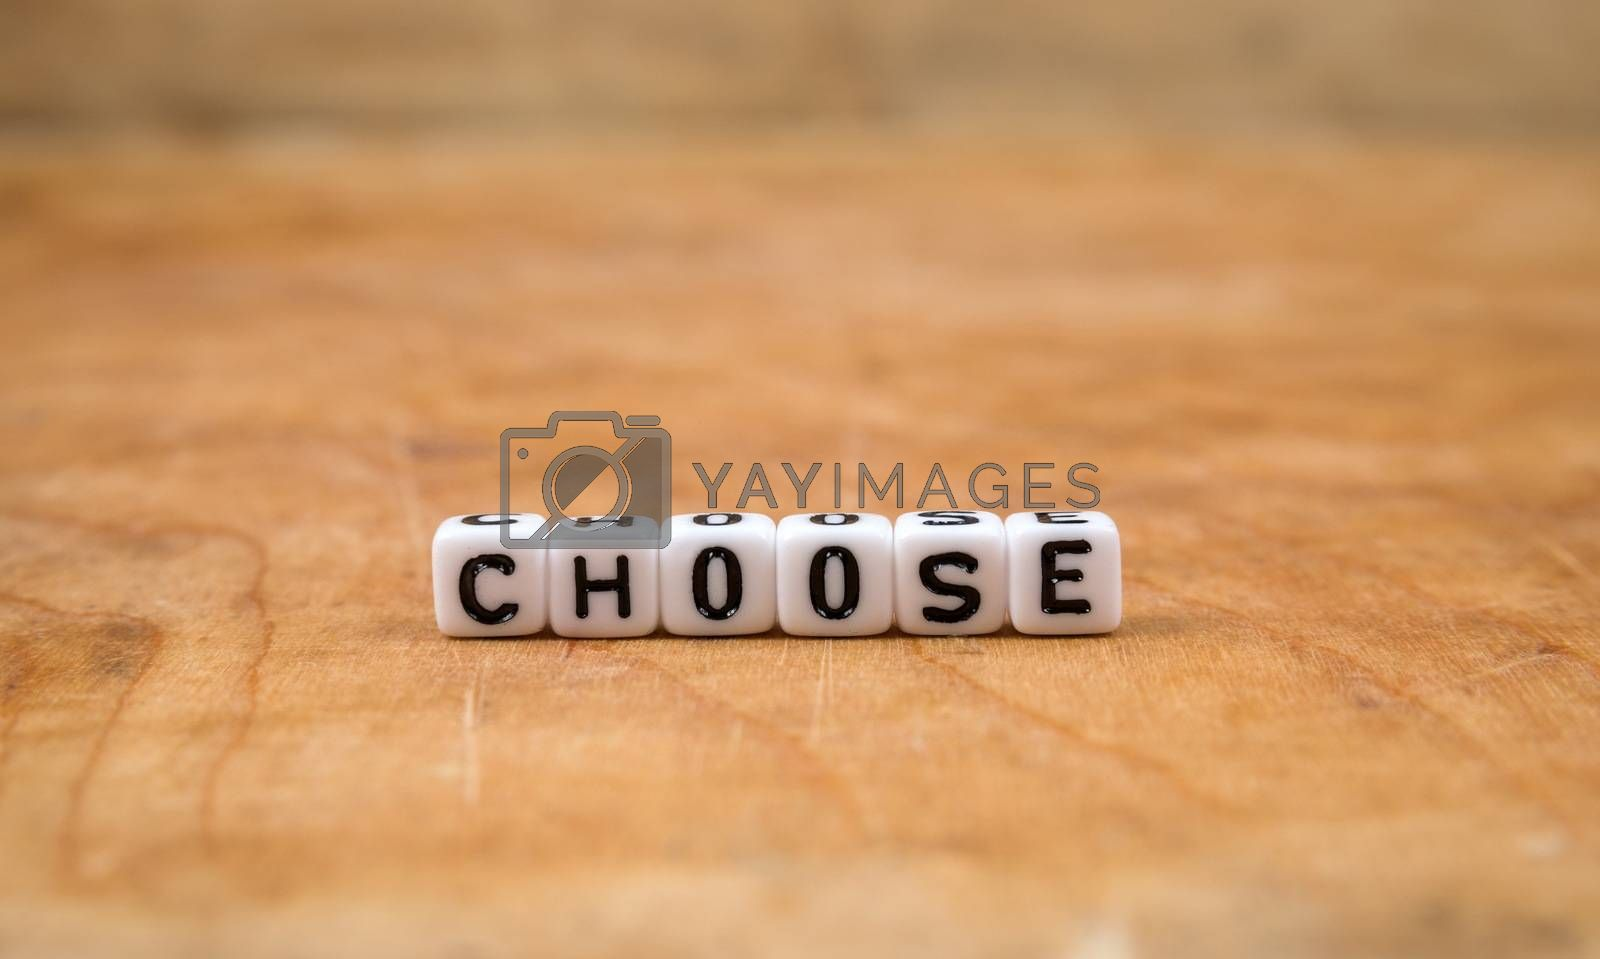 cube words on the wooden table by gmstockstudio